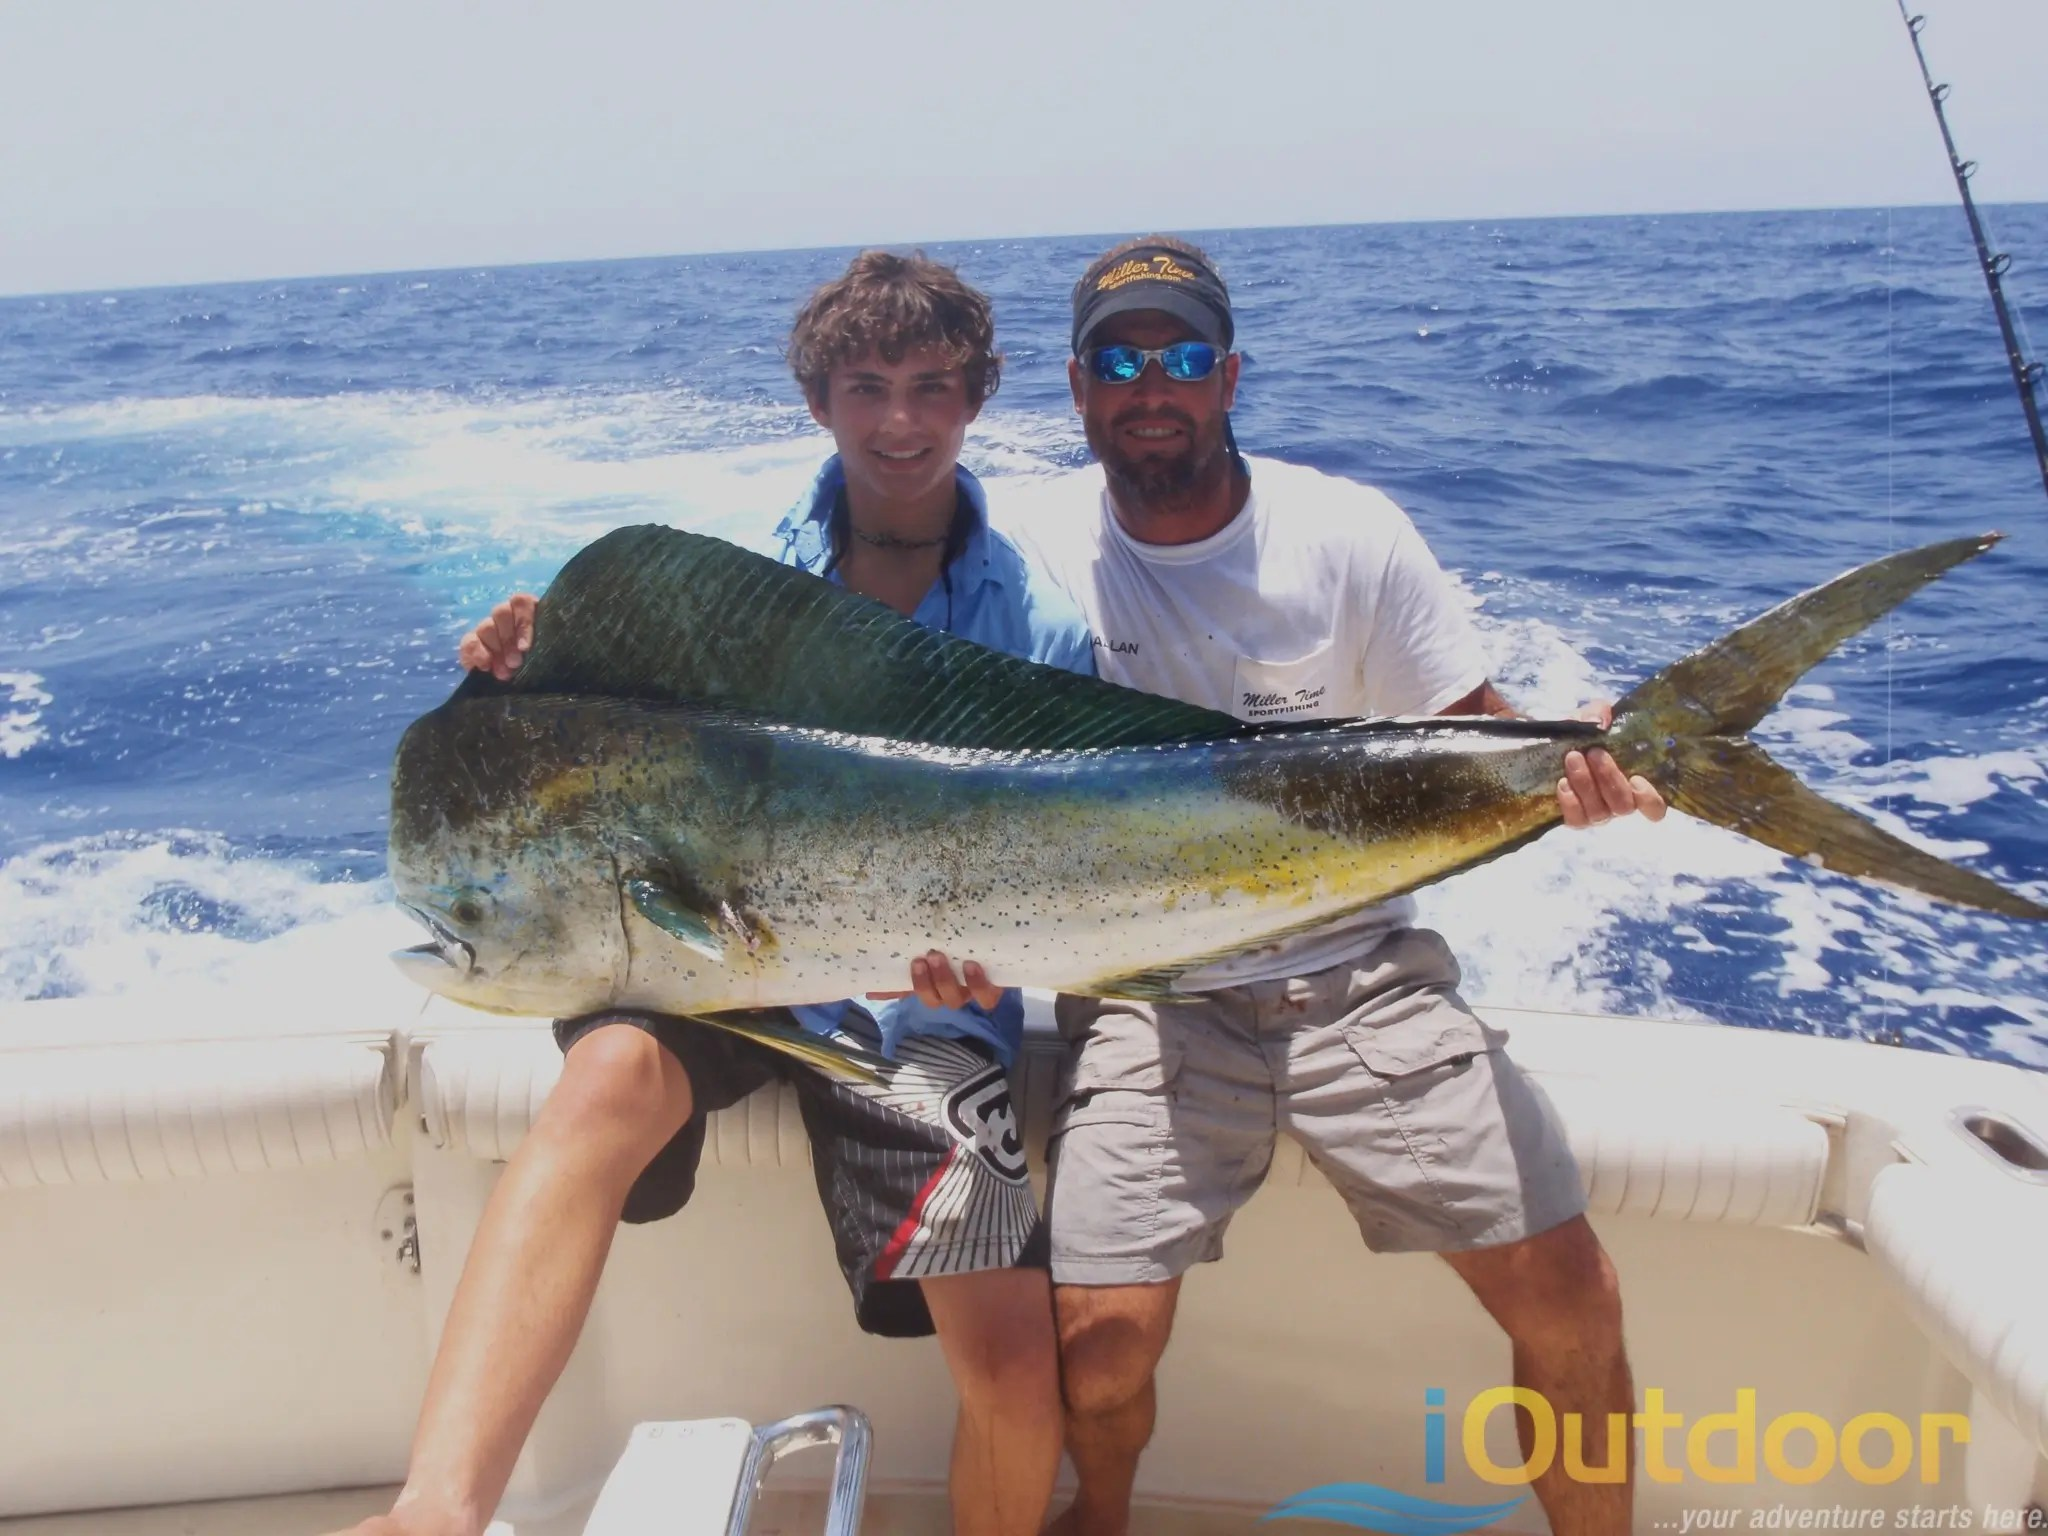 Deep sea offshore fishing the keys ioutdoor adventures for Deep sea fishing jacksonville